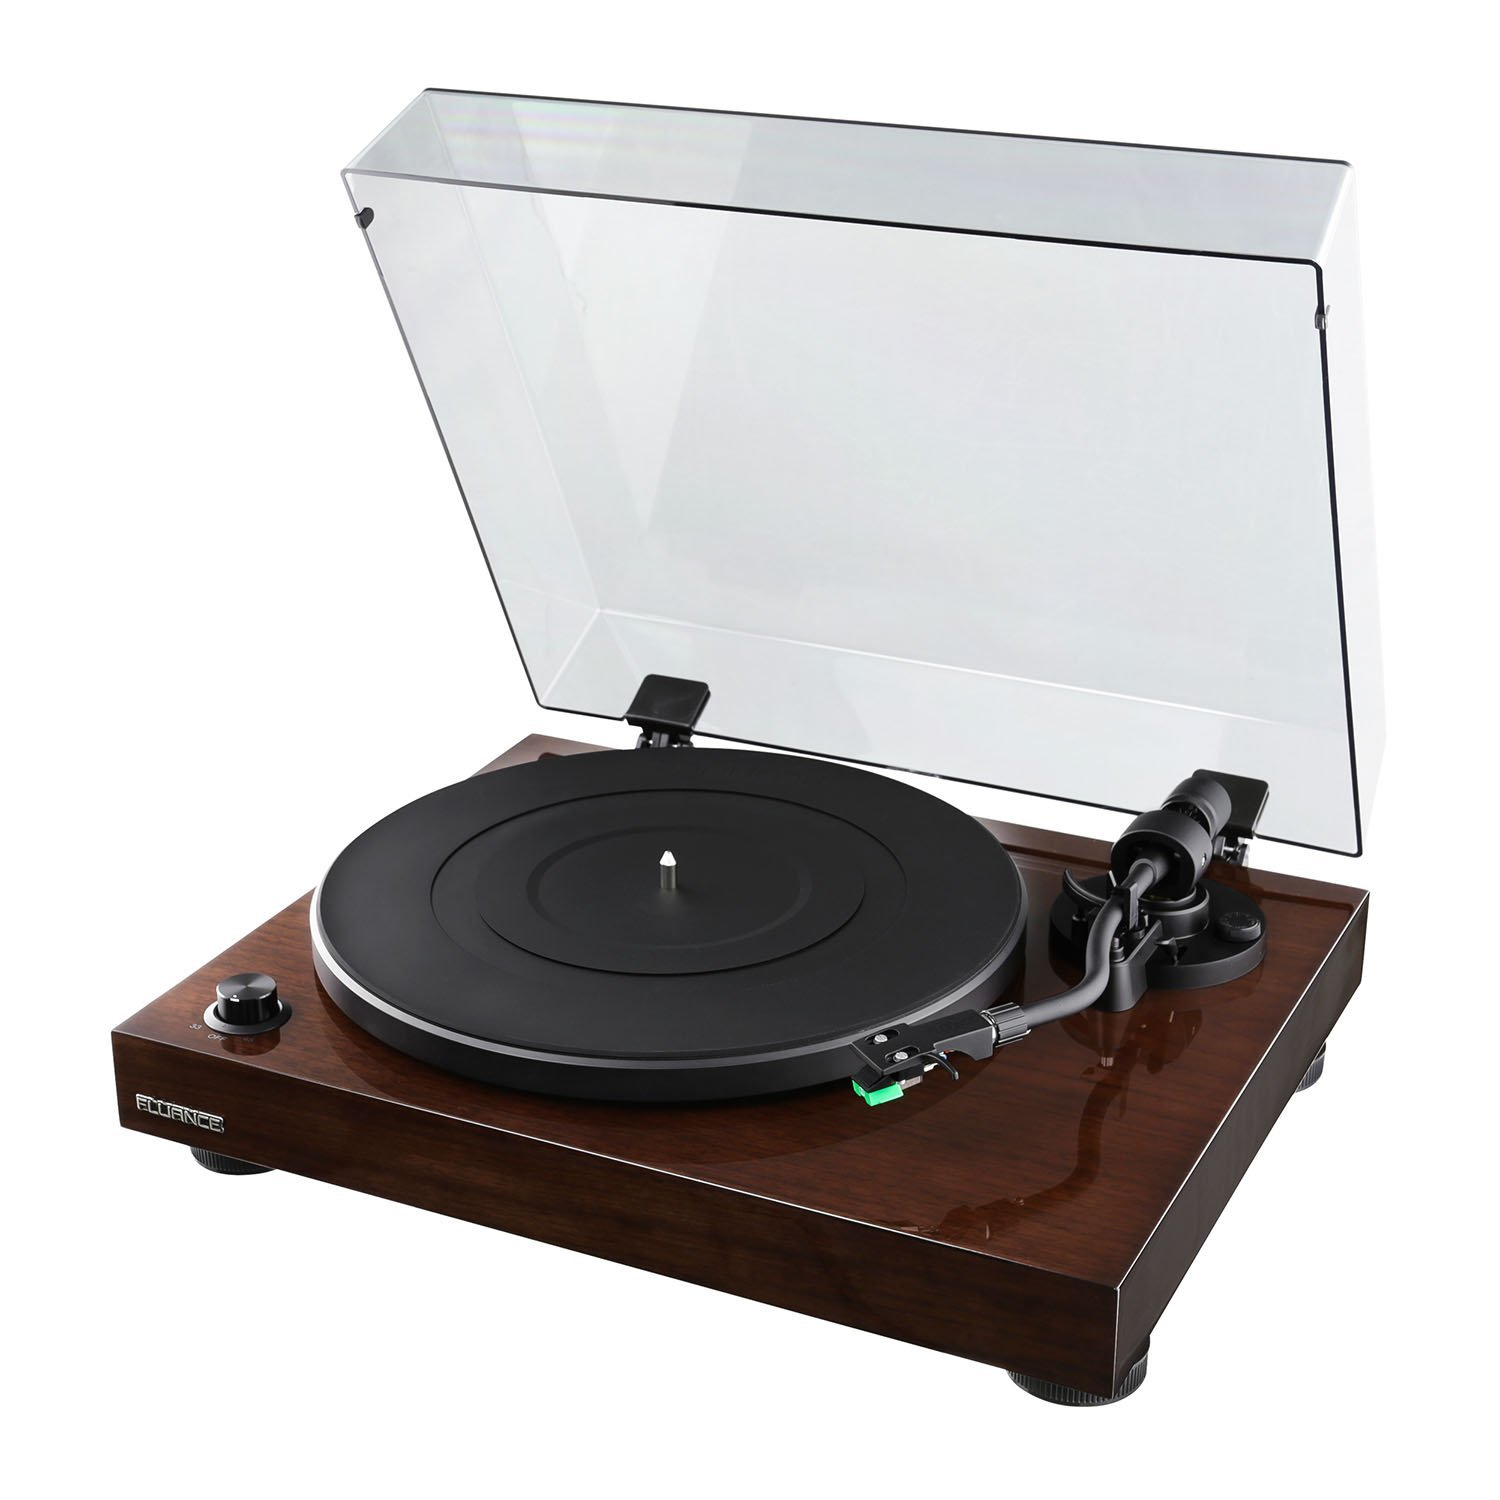 Fluance RT81 High Fidelity Vinyl Turntable Record Player Black Friday deal 2020